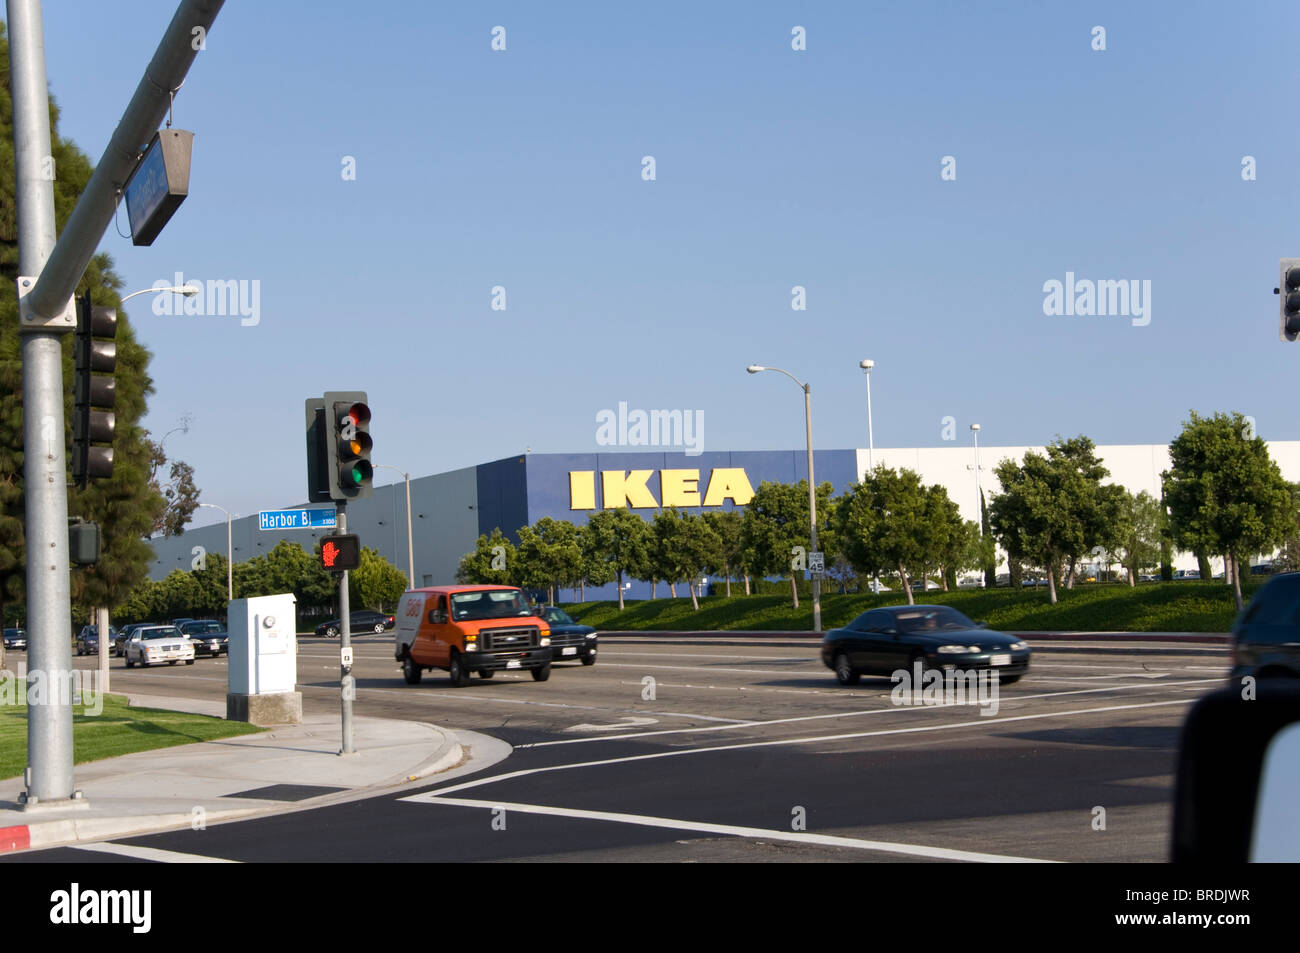 ikea store stock photo royalty free image 31647667 alamy. Black Bedroom Furniture Sets. Home Design Ideas